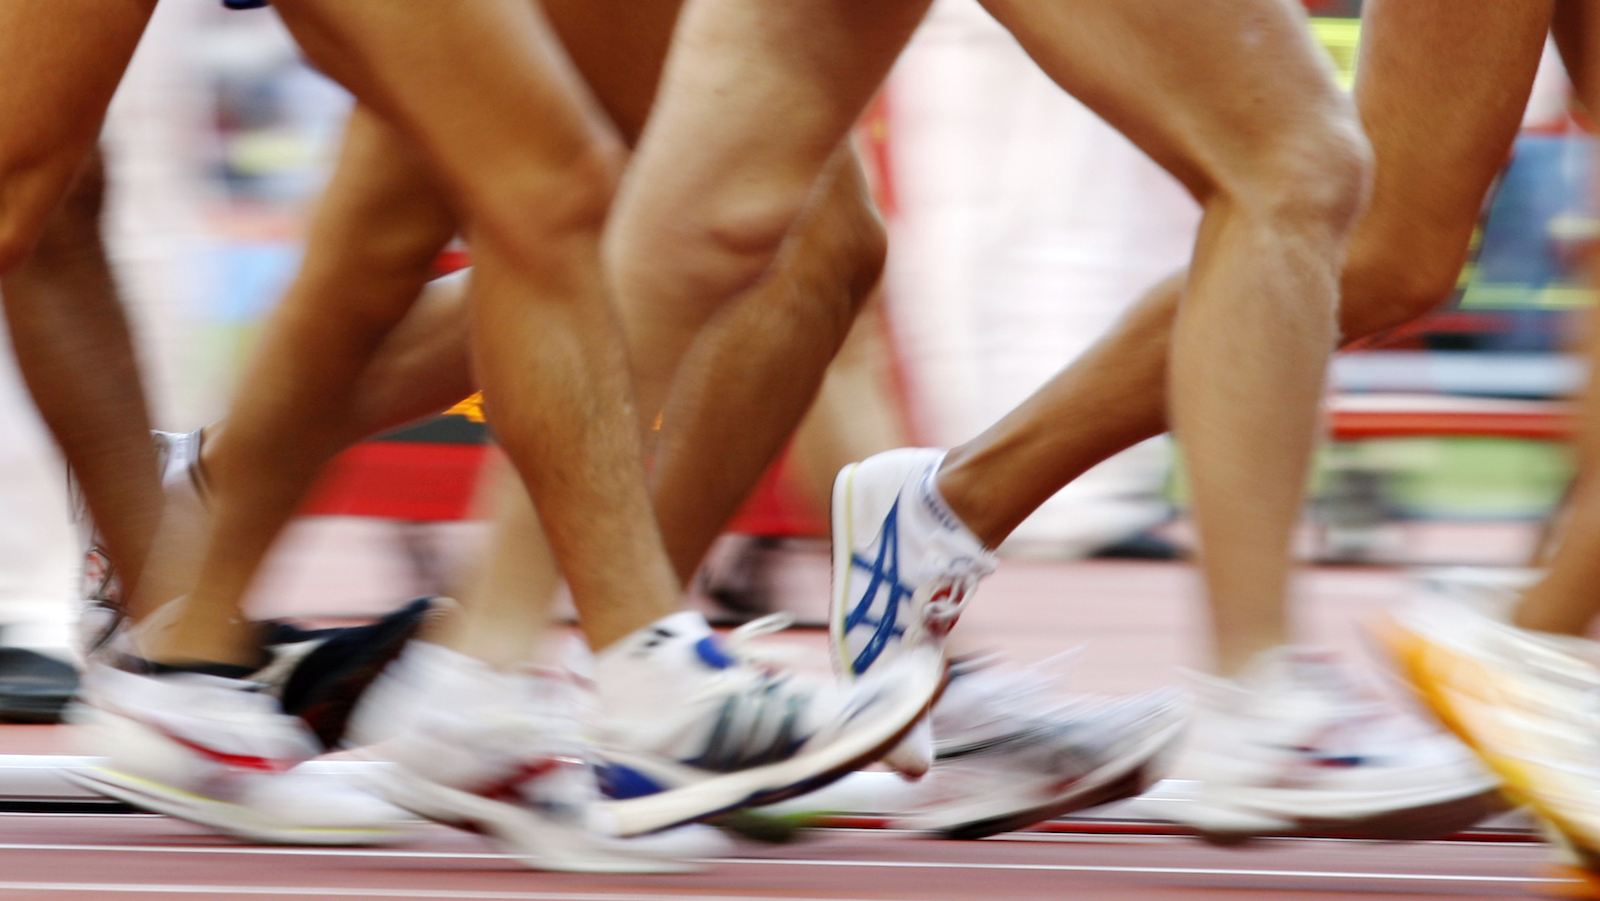 Competitors take part in the men's 20km walk in the athletics competition in the National Stadium at the Beijing 2008 Olympic Games August 16, 2008     REUTERS/Gary Hershorn (CHINA) - RTR216M0